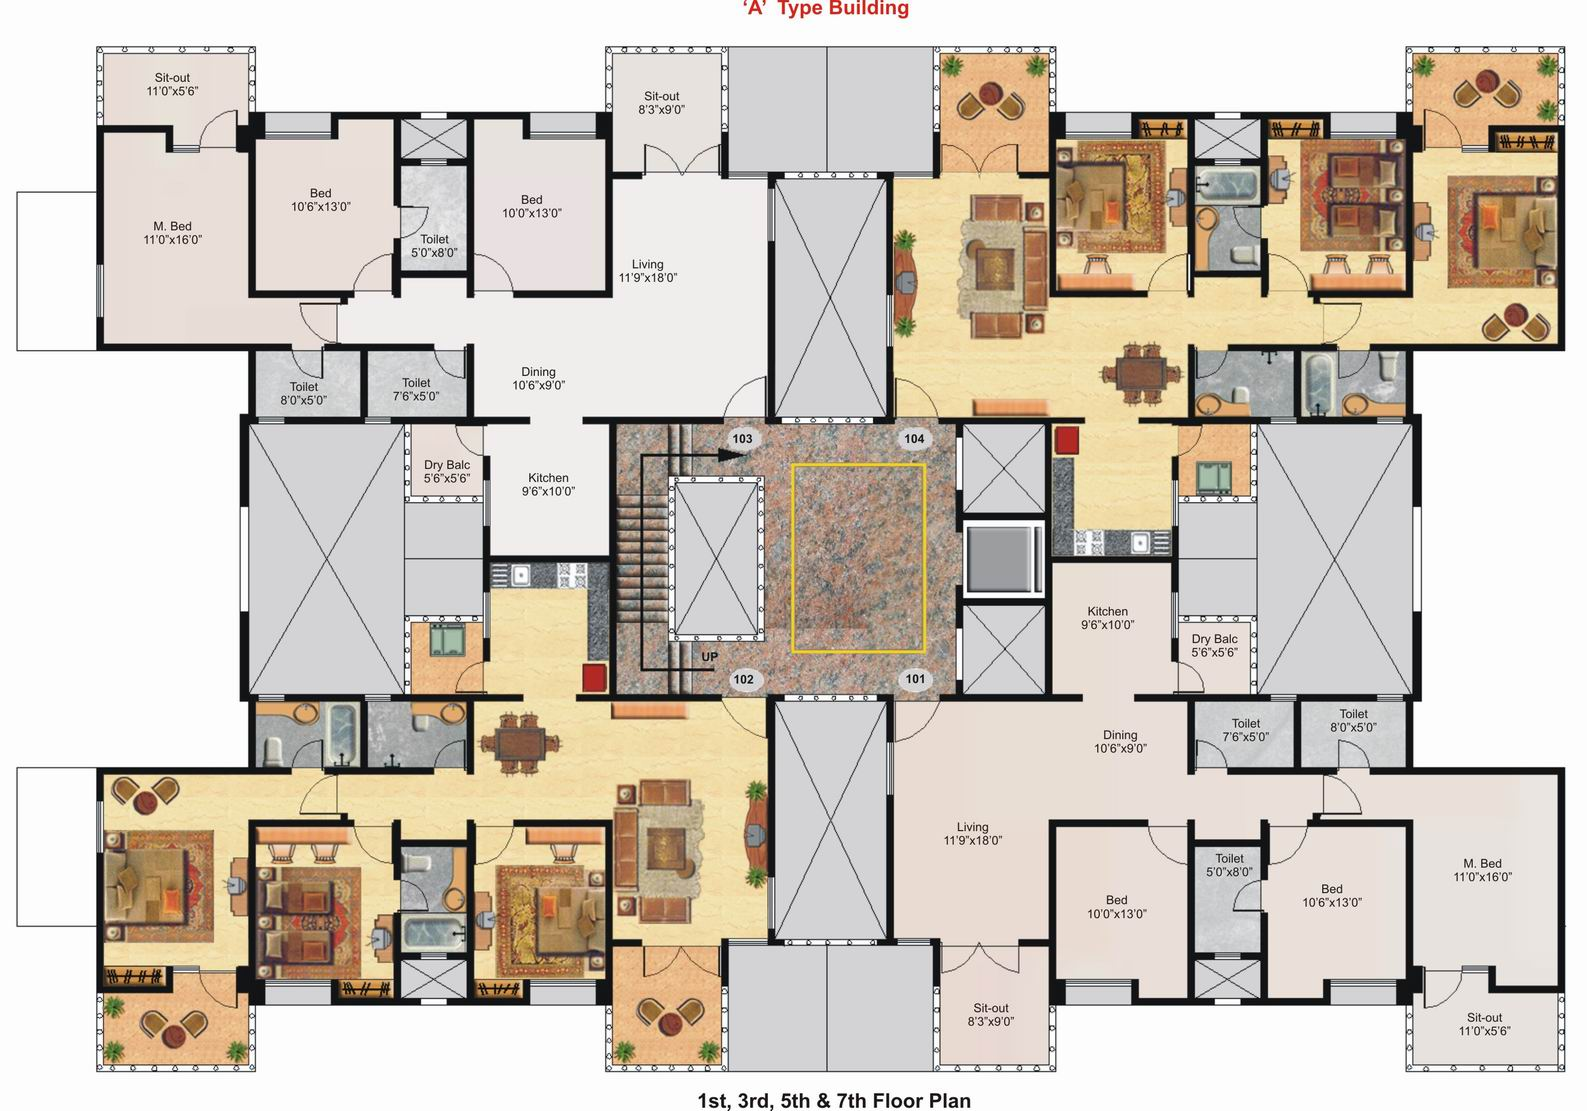 3d floor plan of a celeb mansion modern house - Bedroom house plan images ...